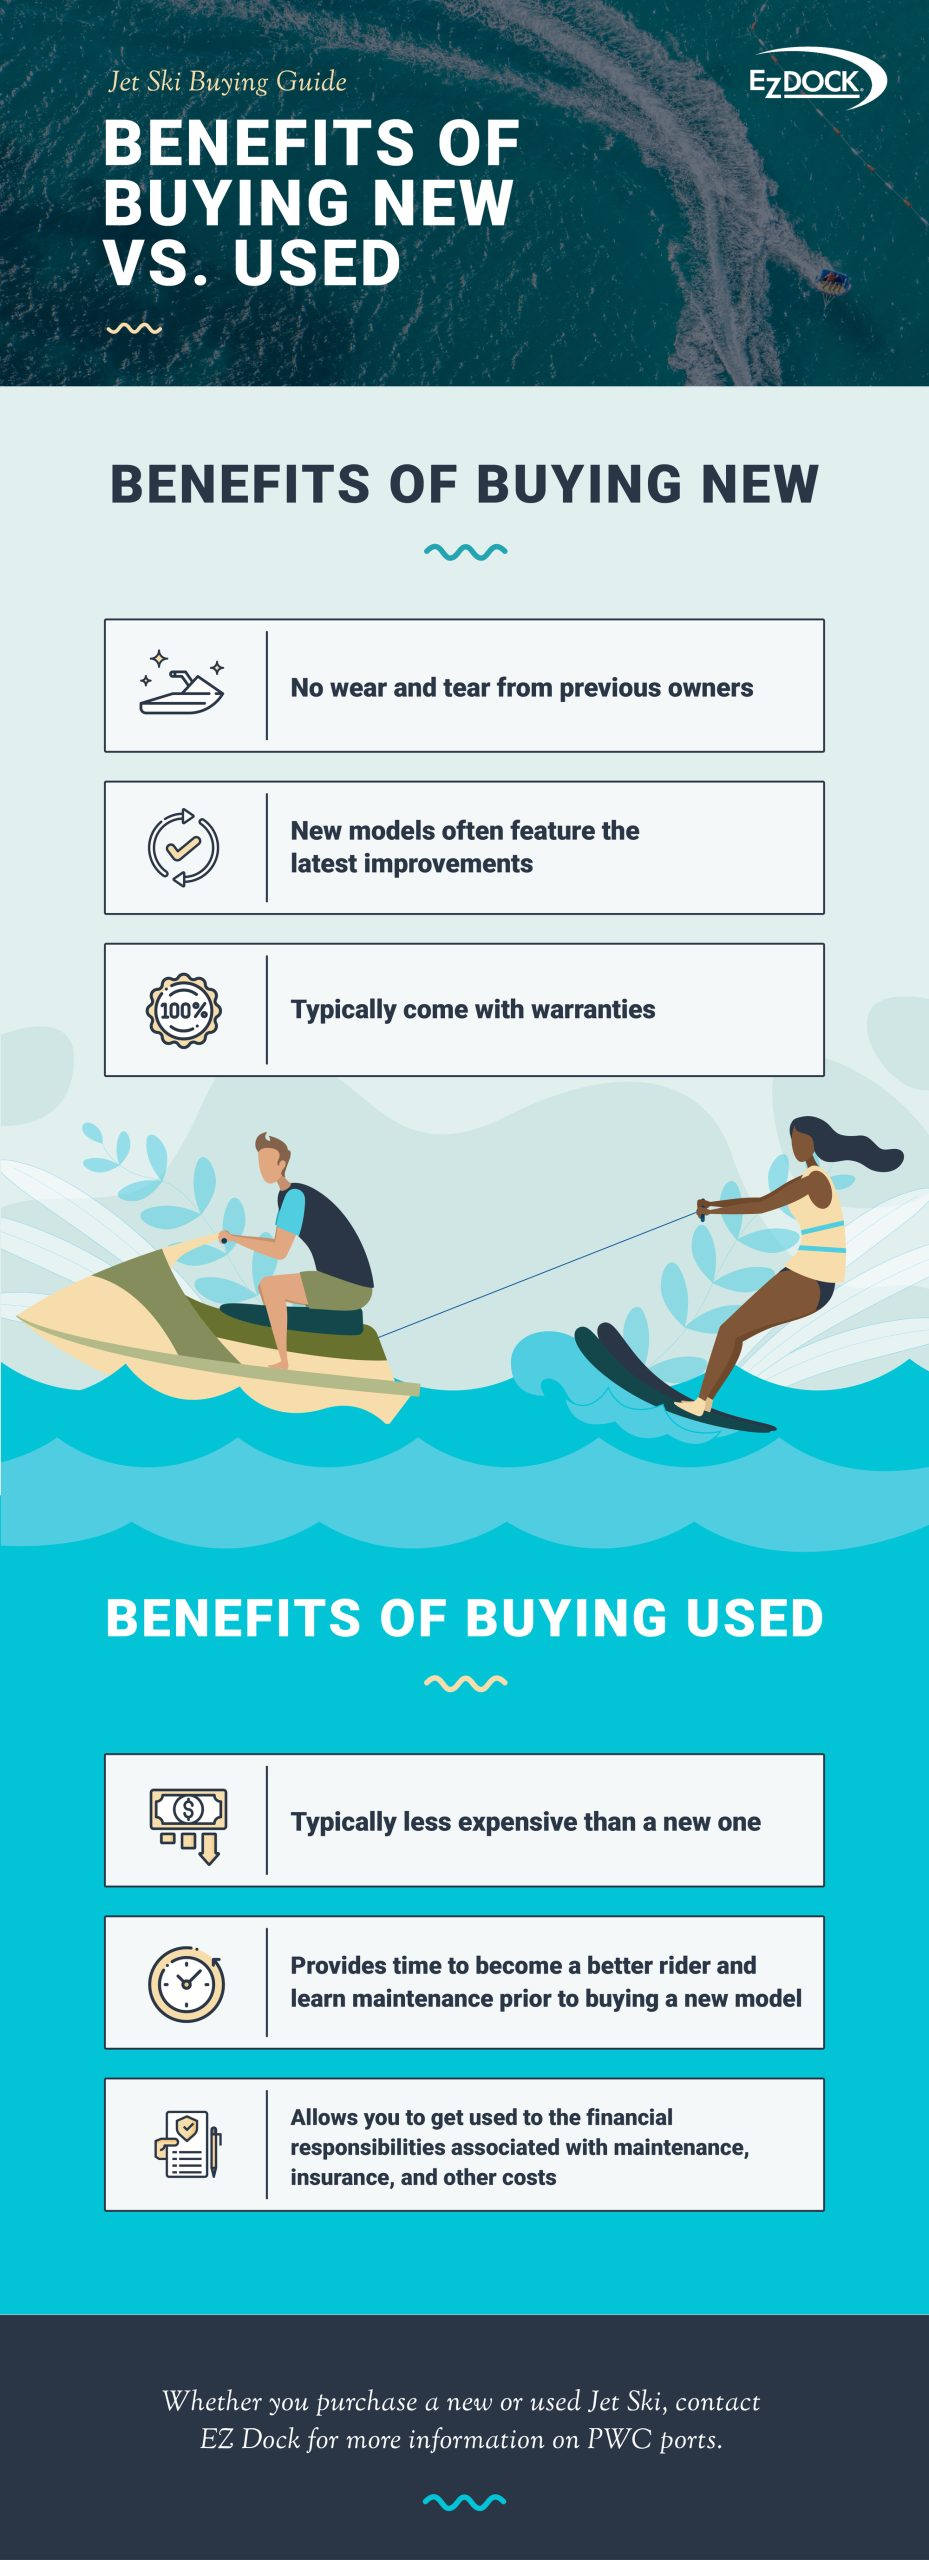 Benefits of buying new vs used jet skis